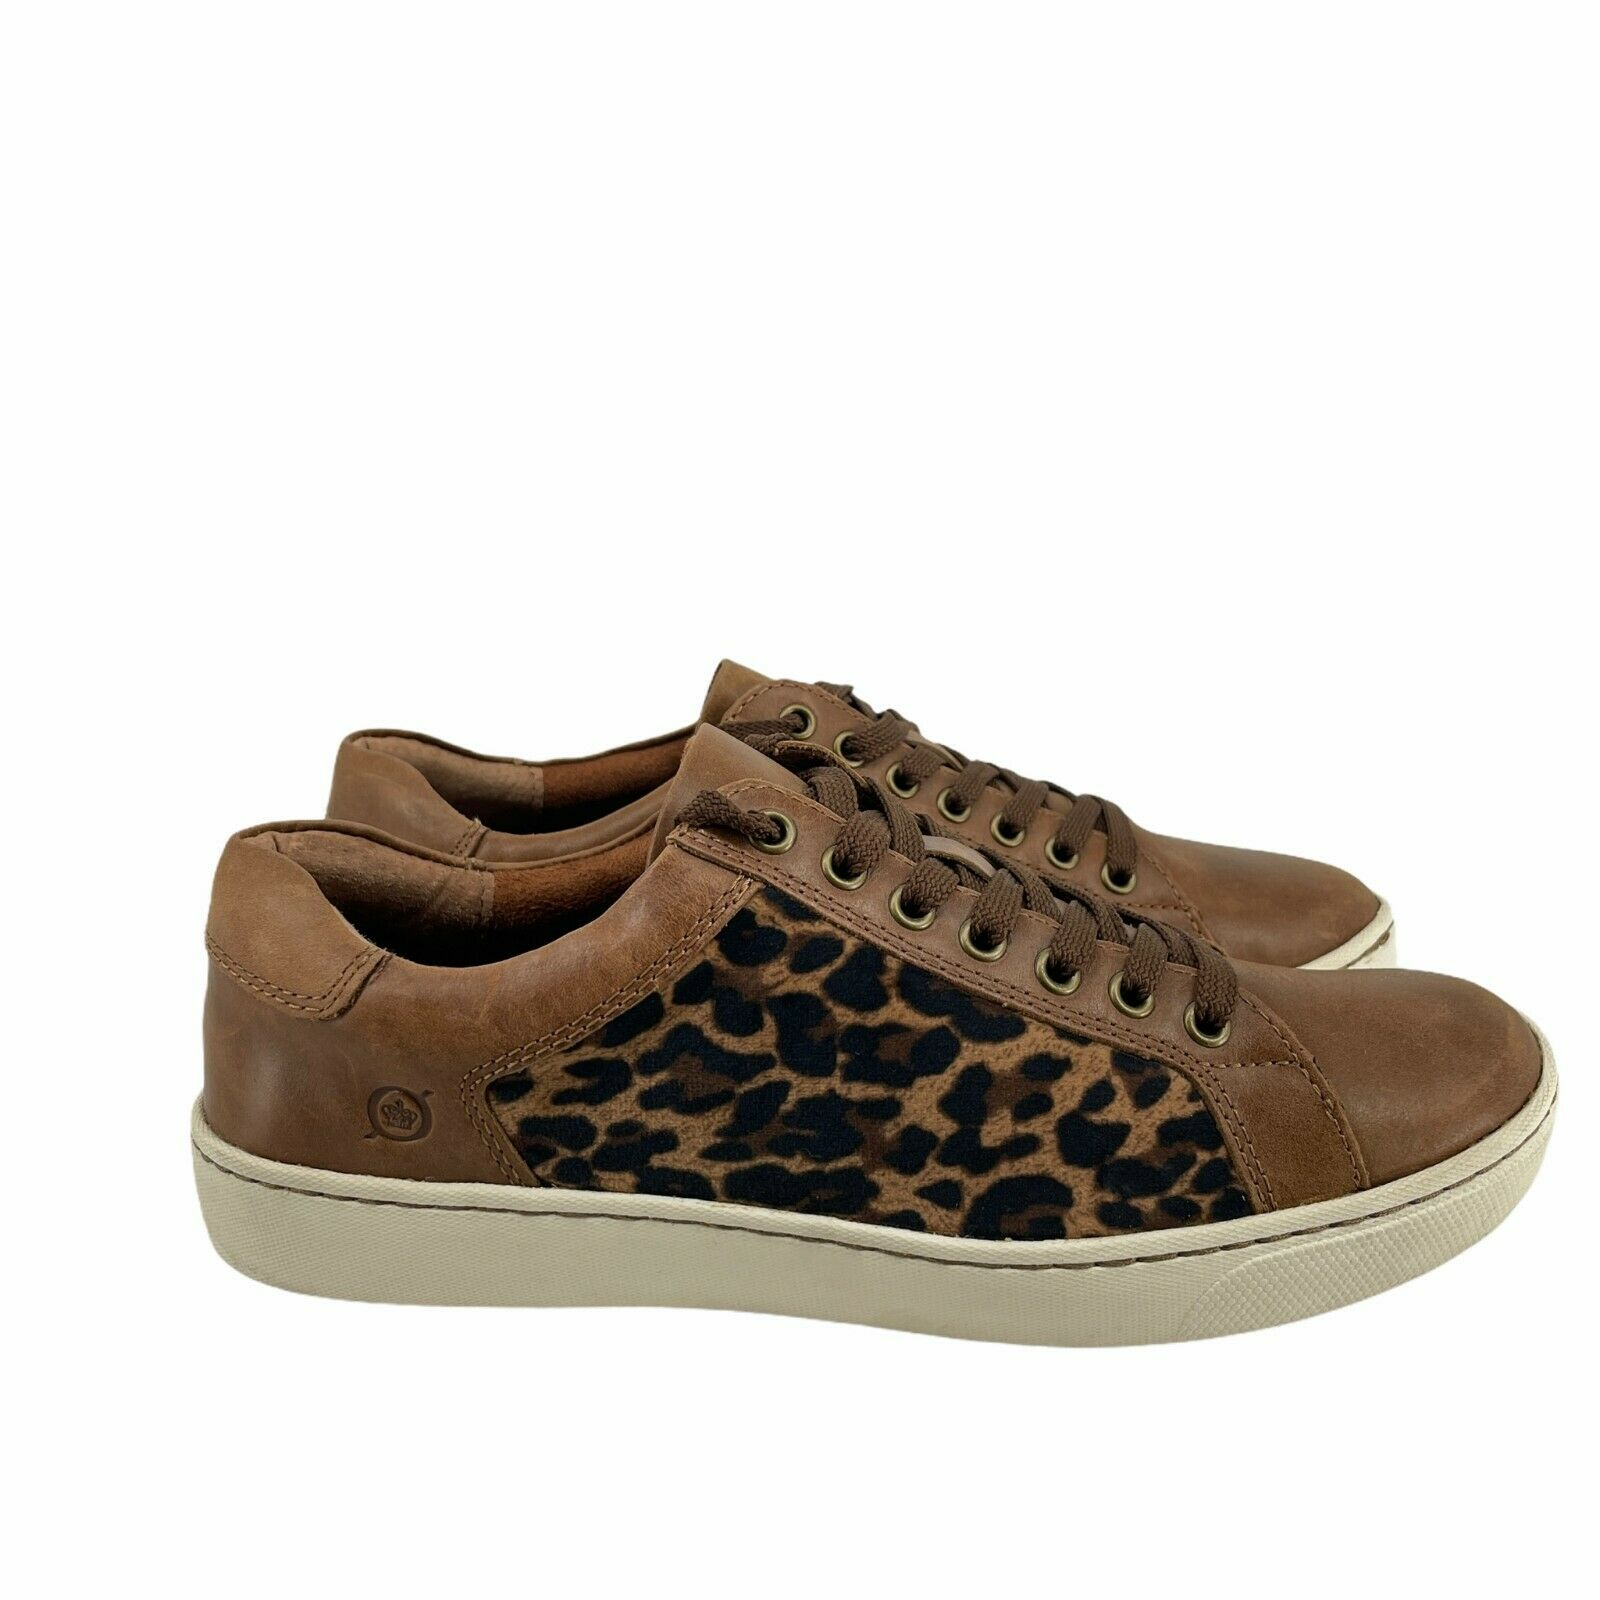 Born Shoes Women's Sur Leopard Print Fabric Brown Size 8 Casual Sneakers Lace Up